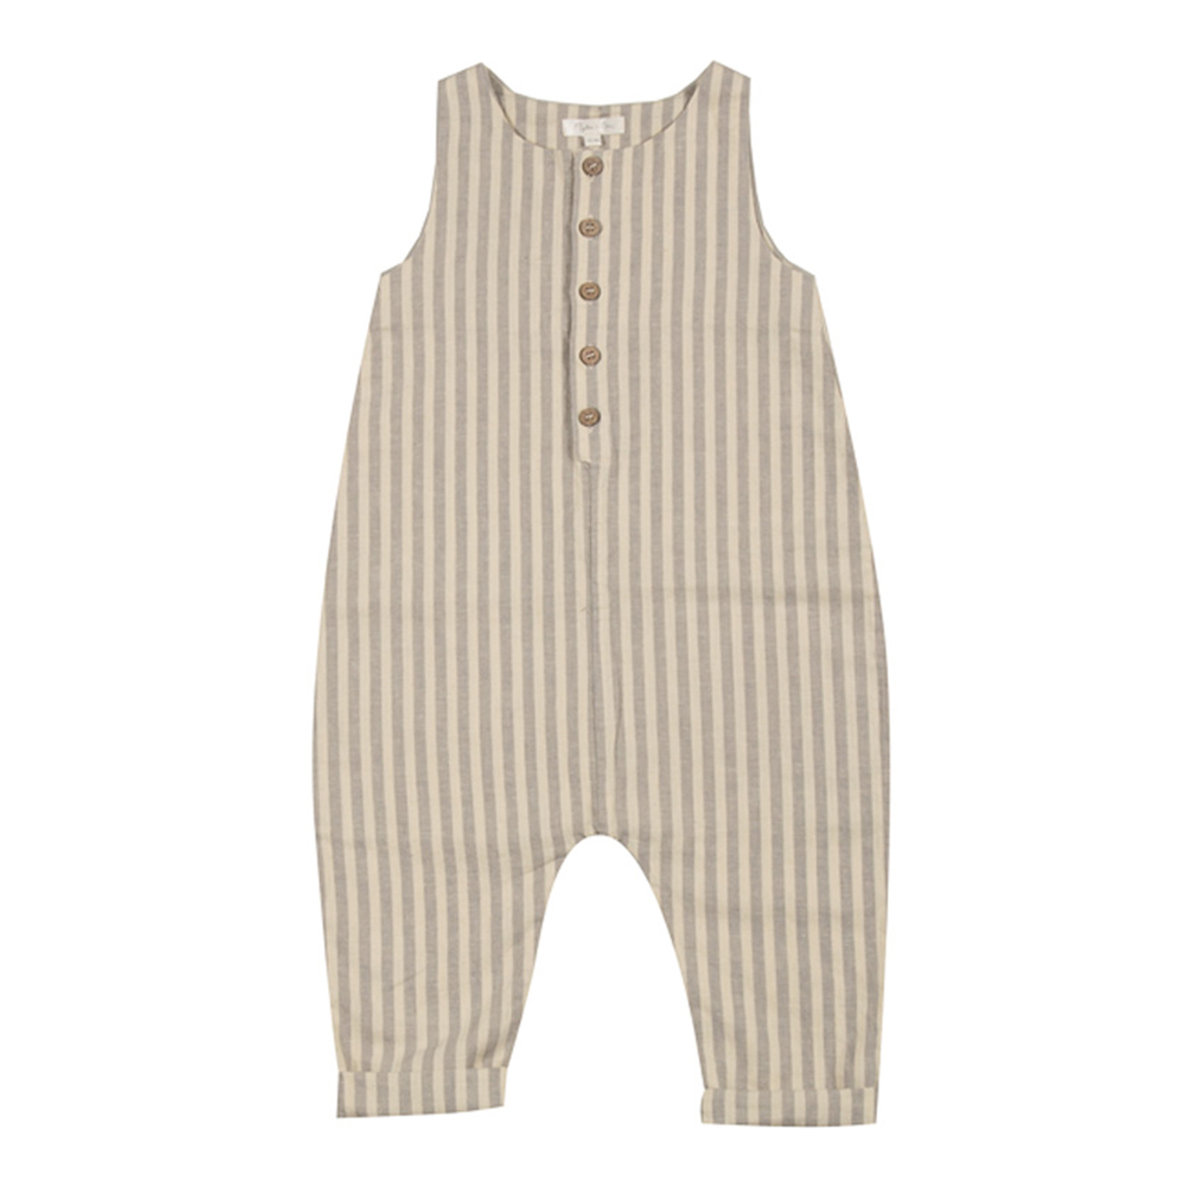 c2aab51d0 Baby Stripe Sleeveless Jumpsuit | Rylee & Cru Jumpsuits, Sets and ...